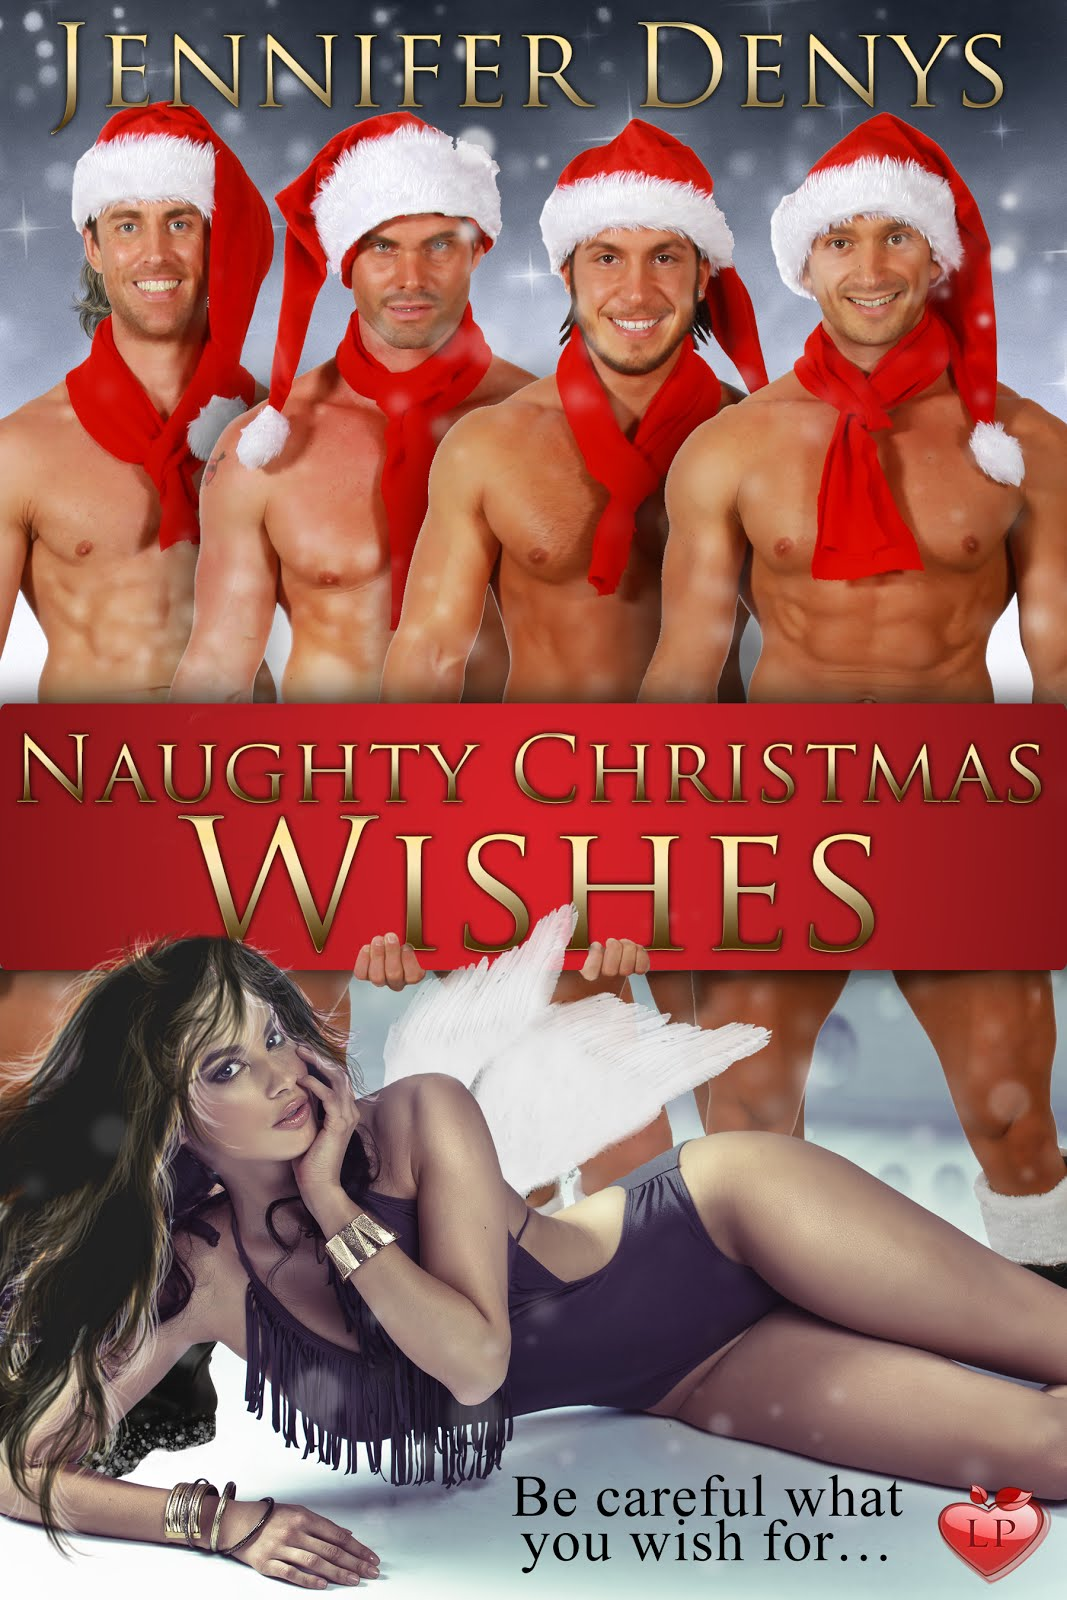 Naughty Christmas Wishes is now out!